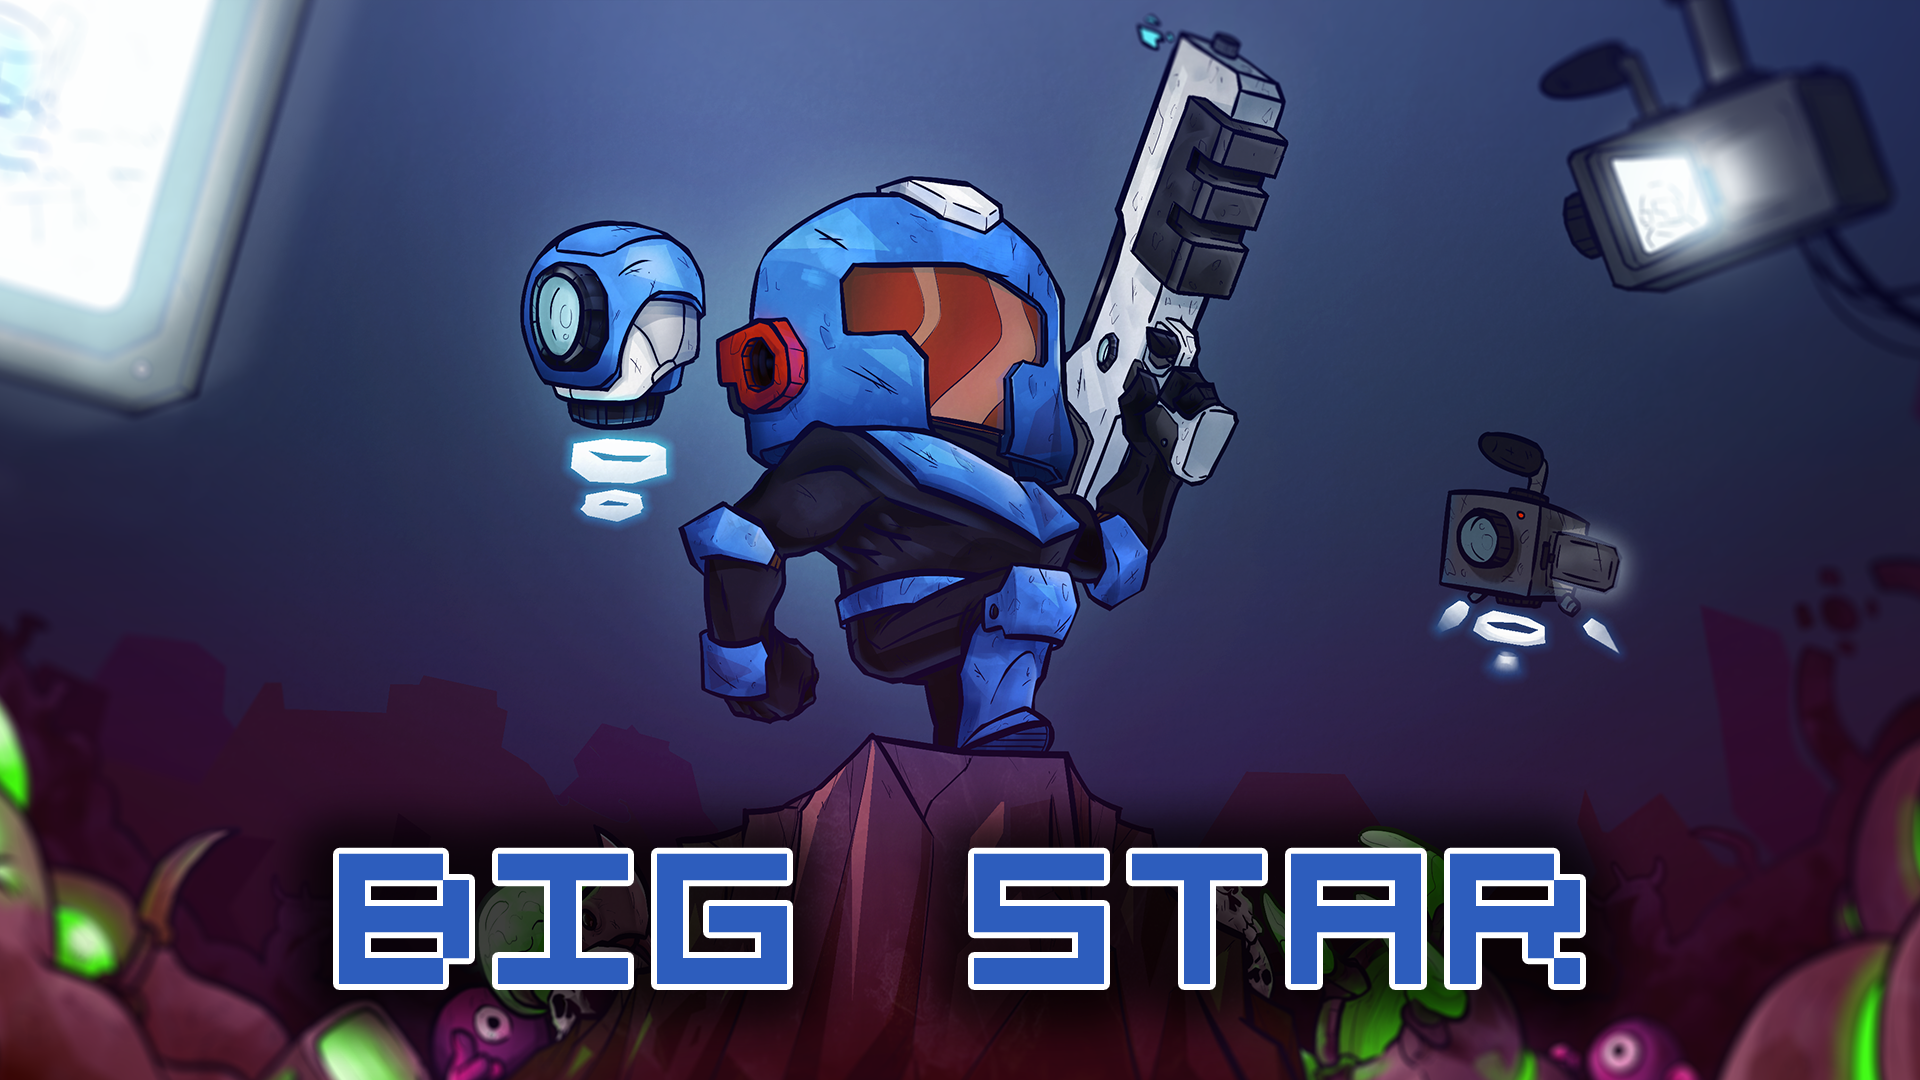 Icon for Big Star